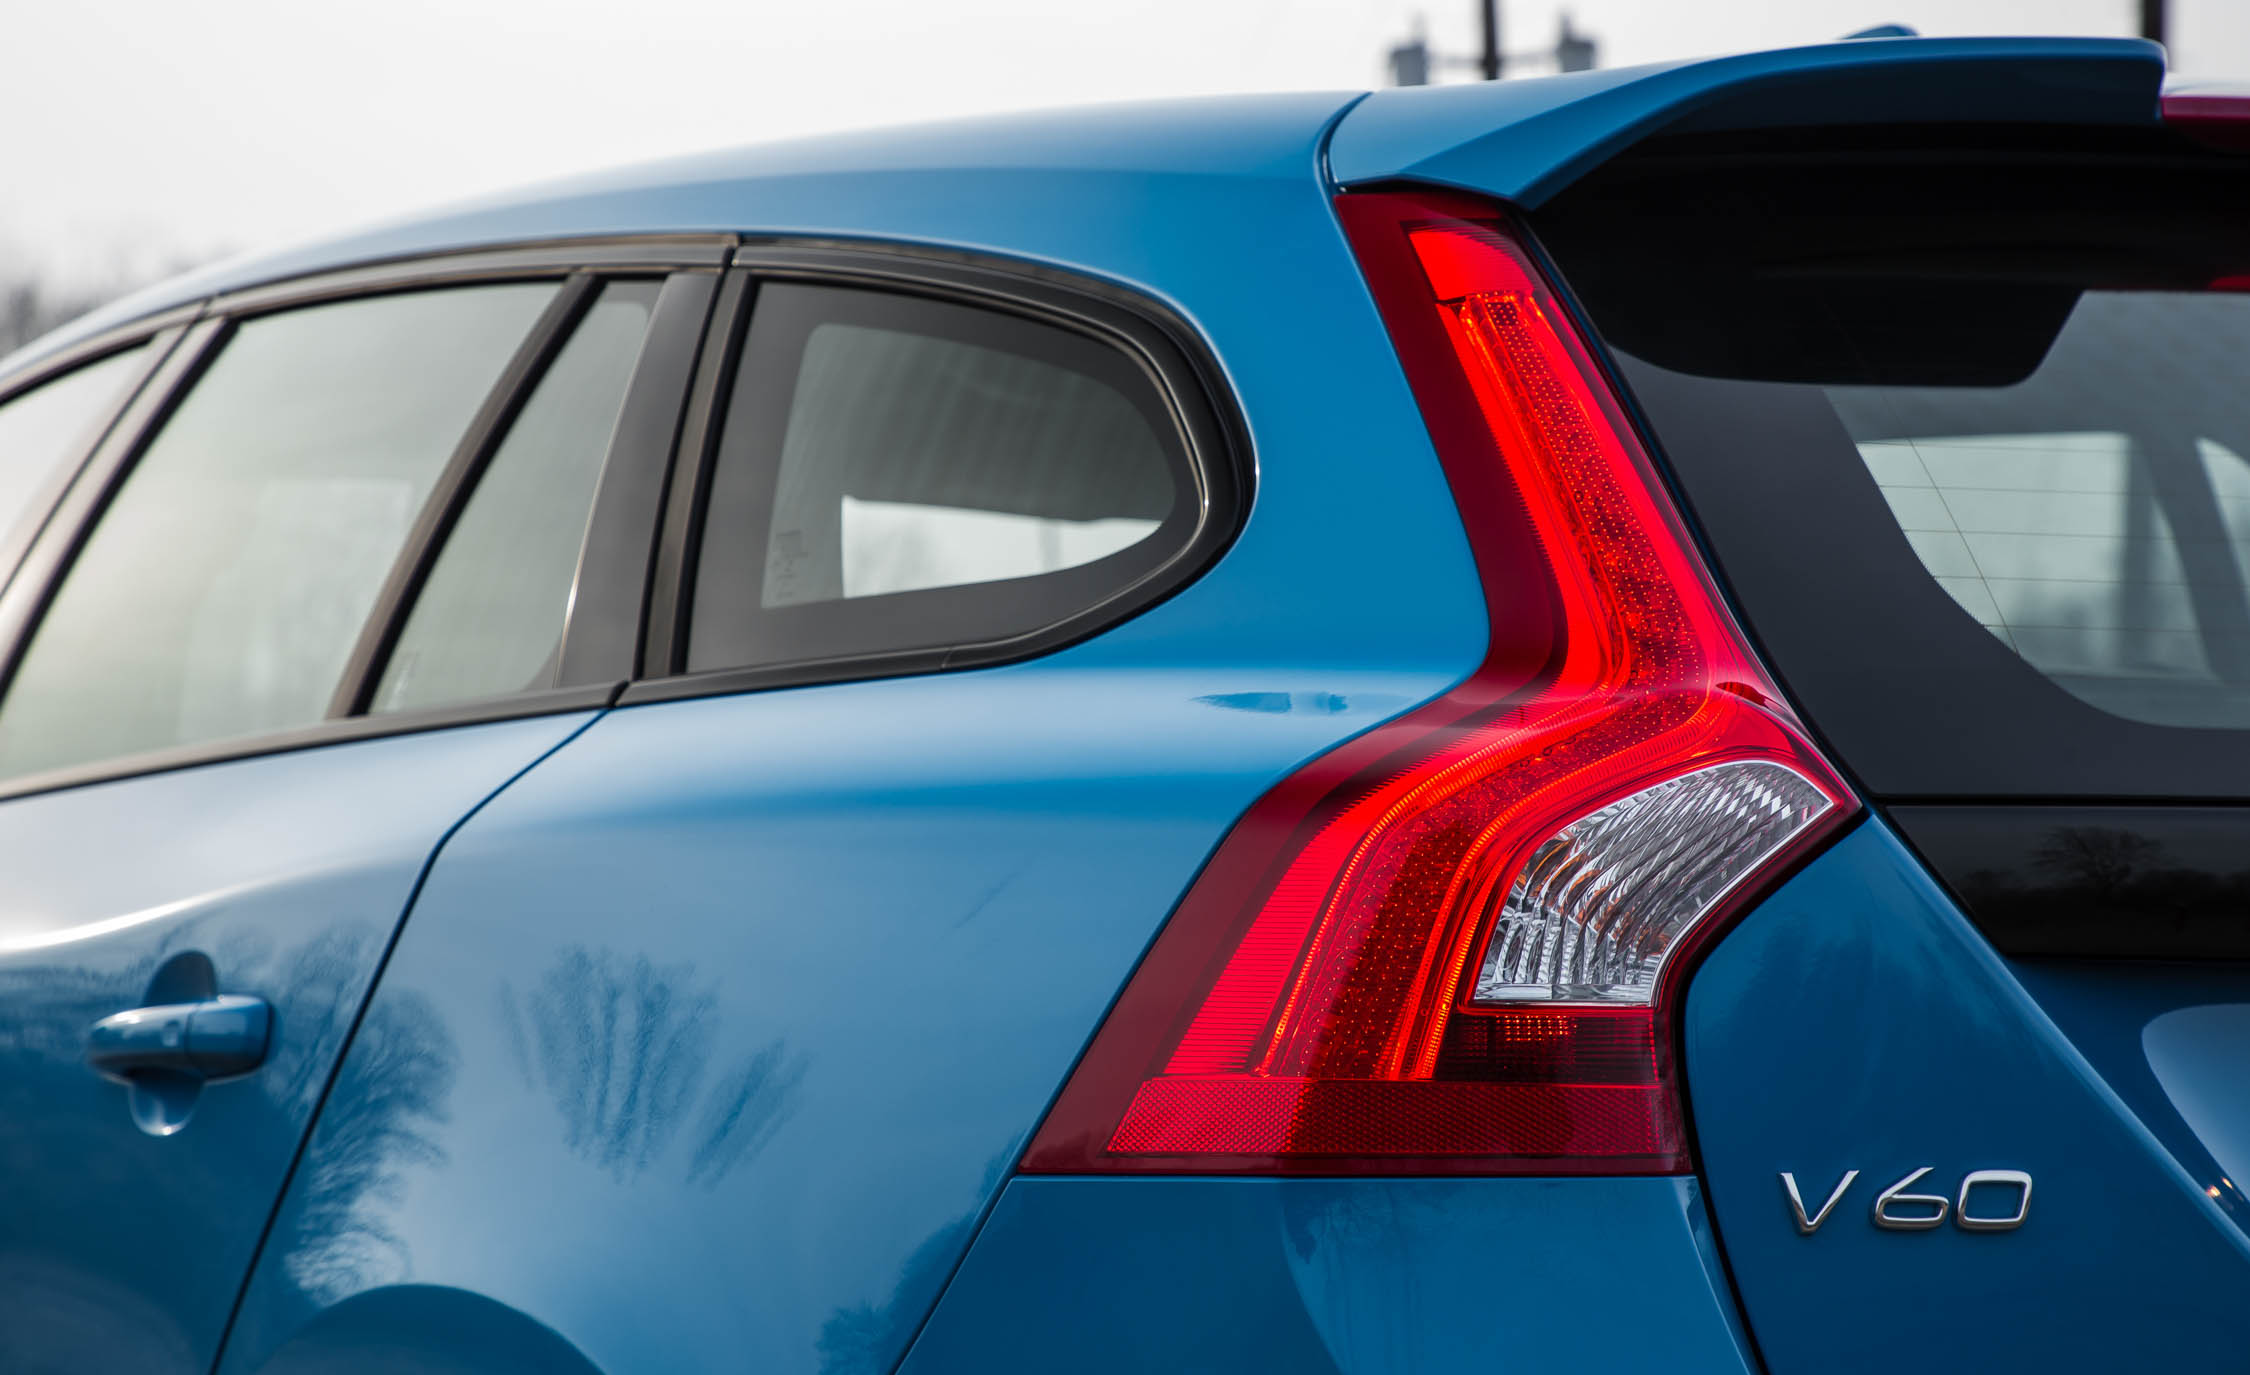 2017 Volvo V60 Polestar Exterior View Taillight (Photo 15 of 53)